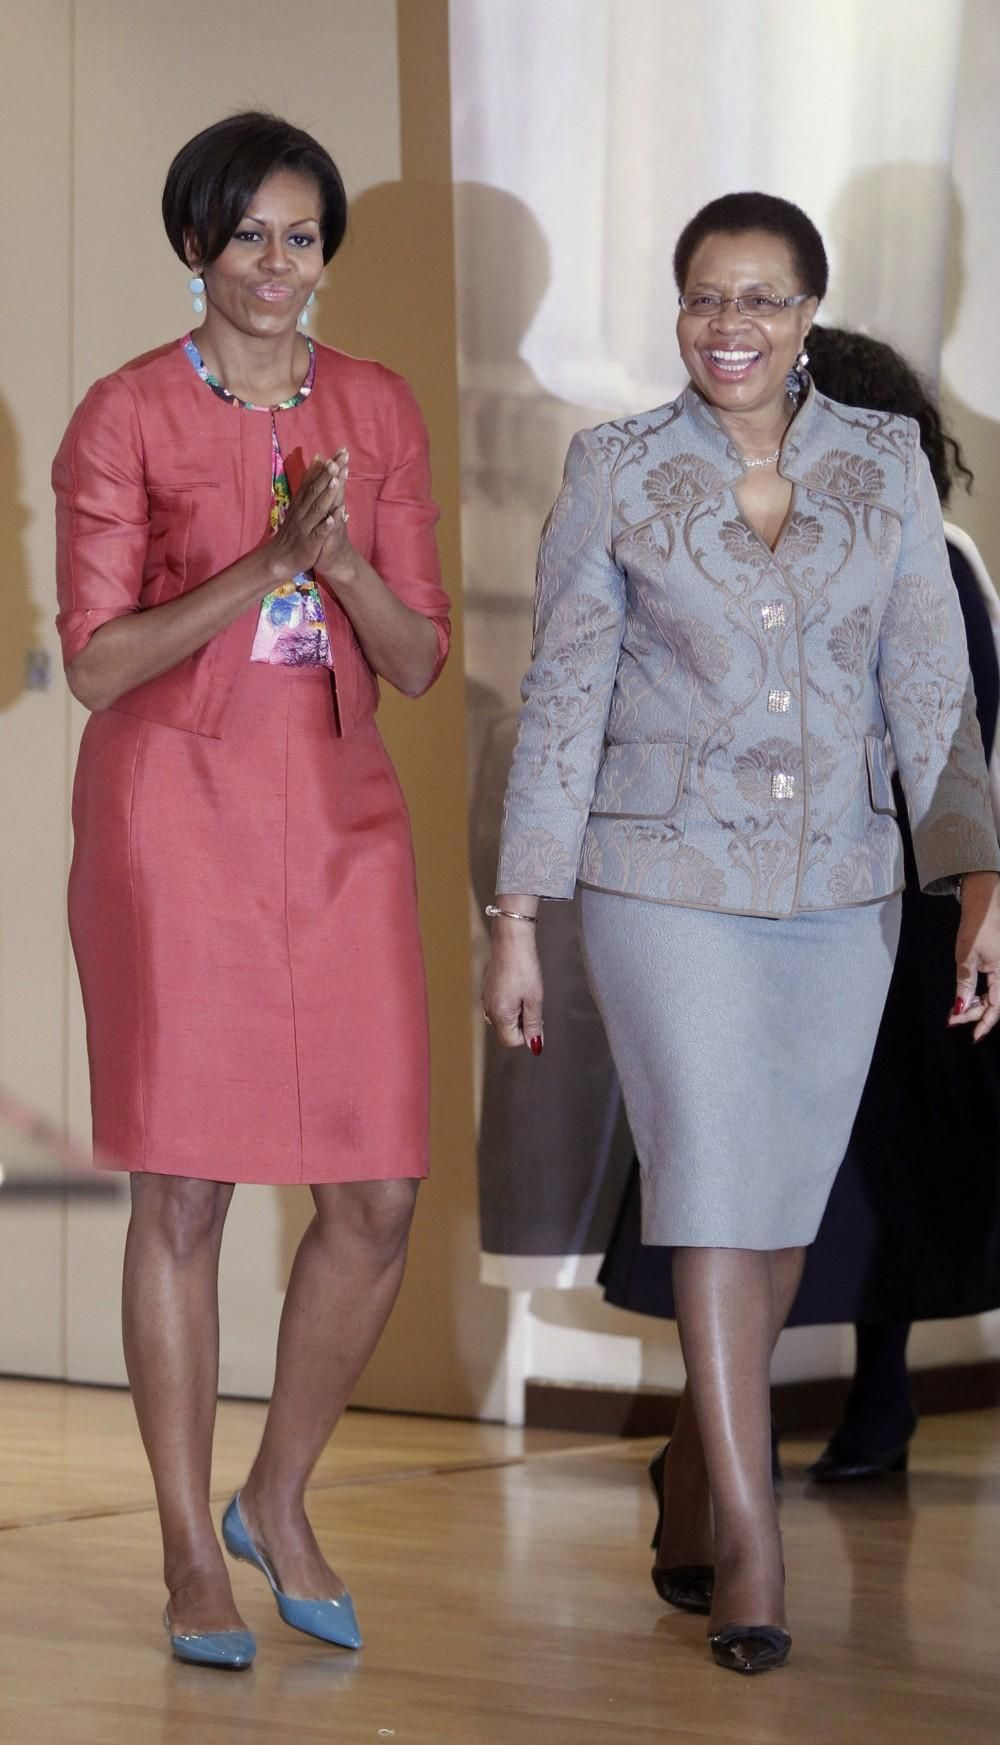 Obama's wife, Michelle Obama and Graca Machel, Nelson  Mandela's wife. First Ladies with First-Class Hearts. Michelle Obama and Graca Machel are so empowering.